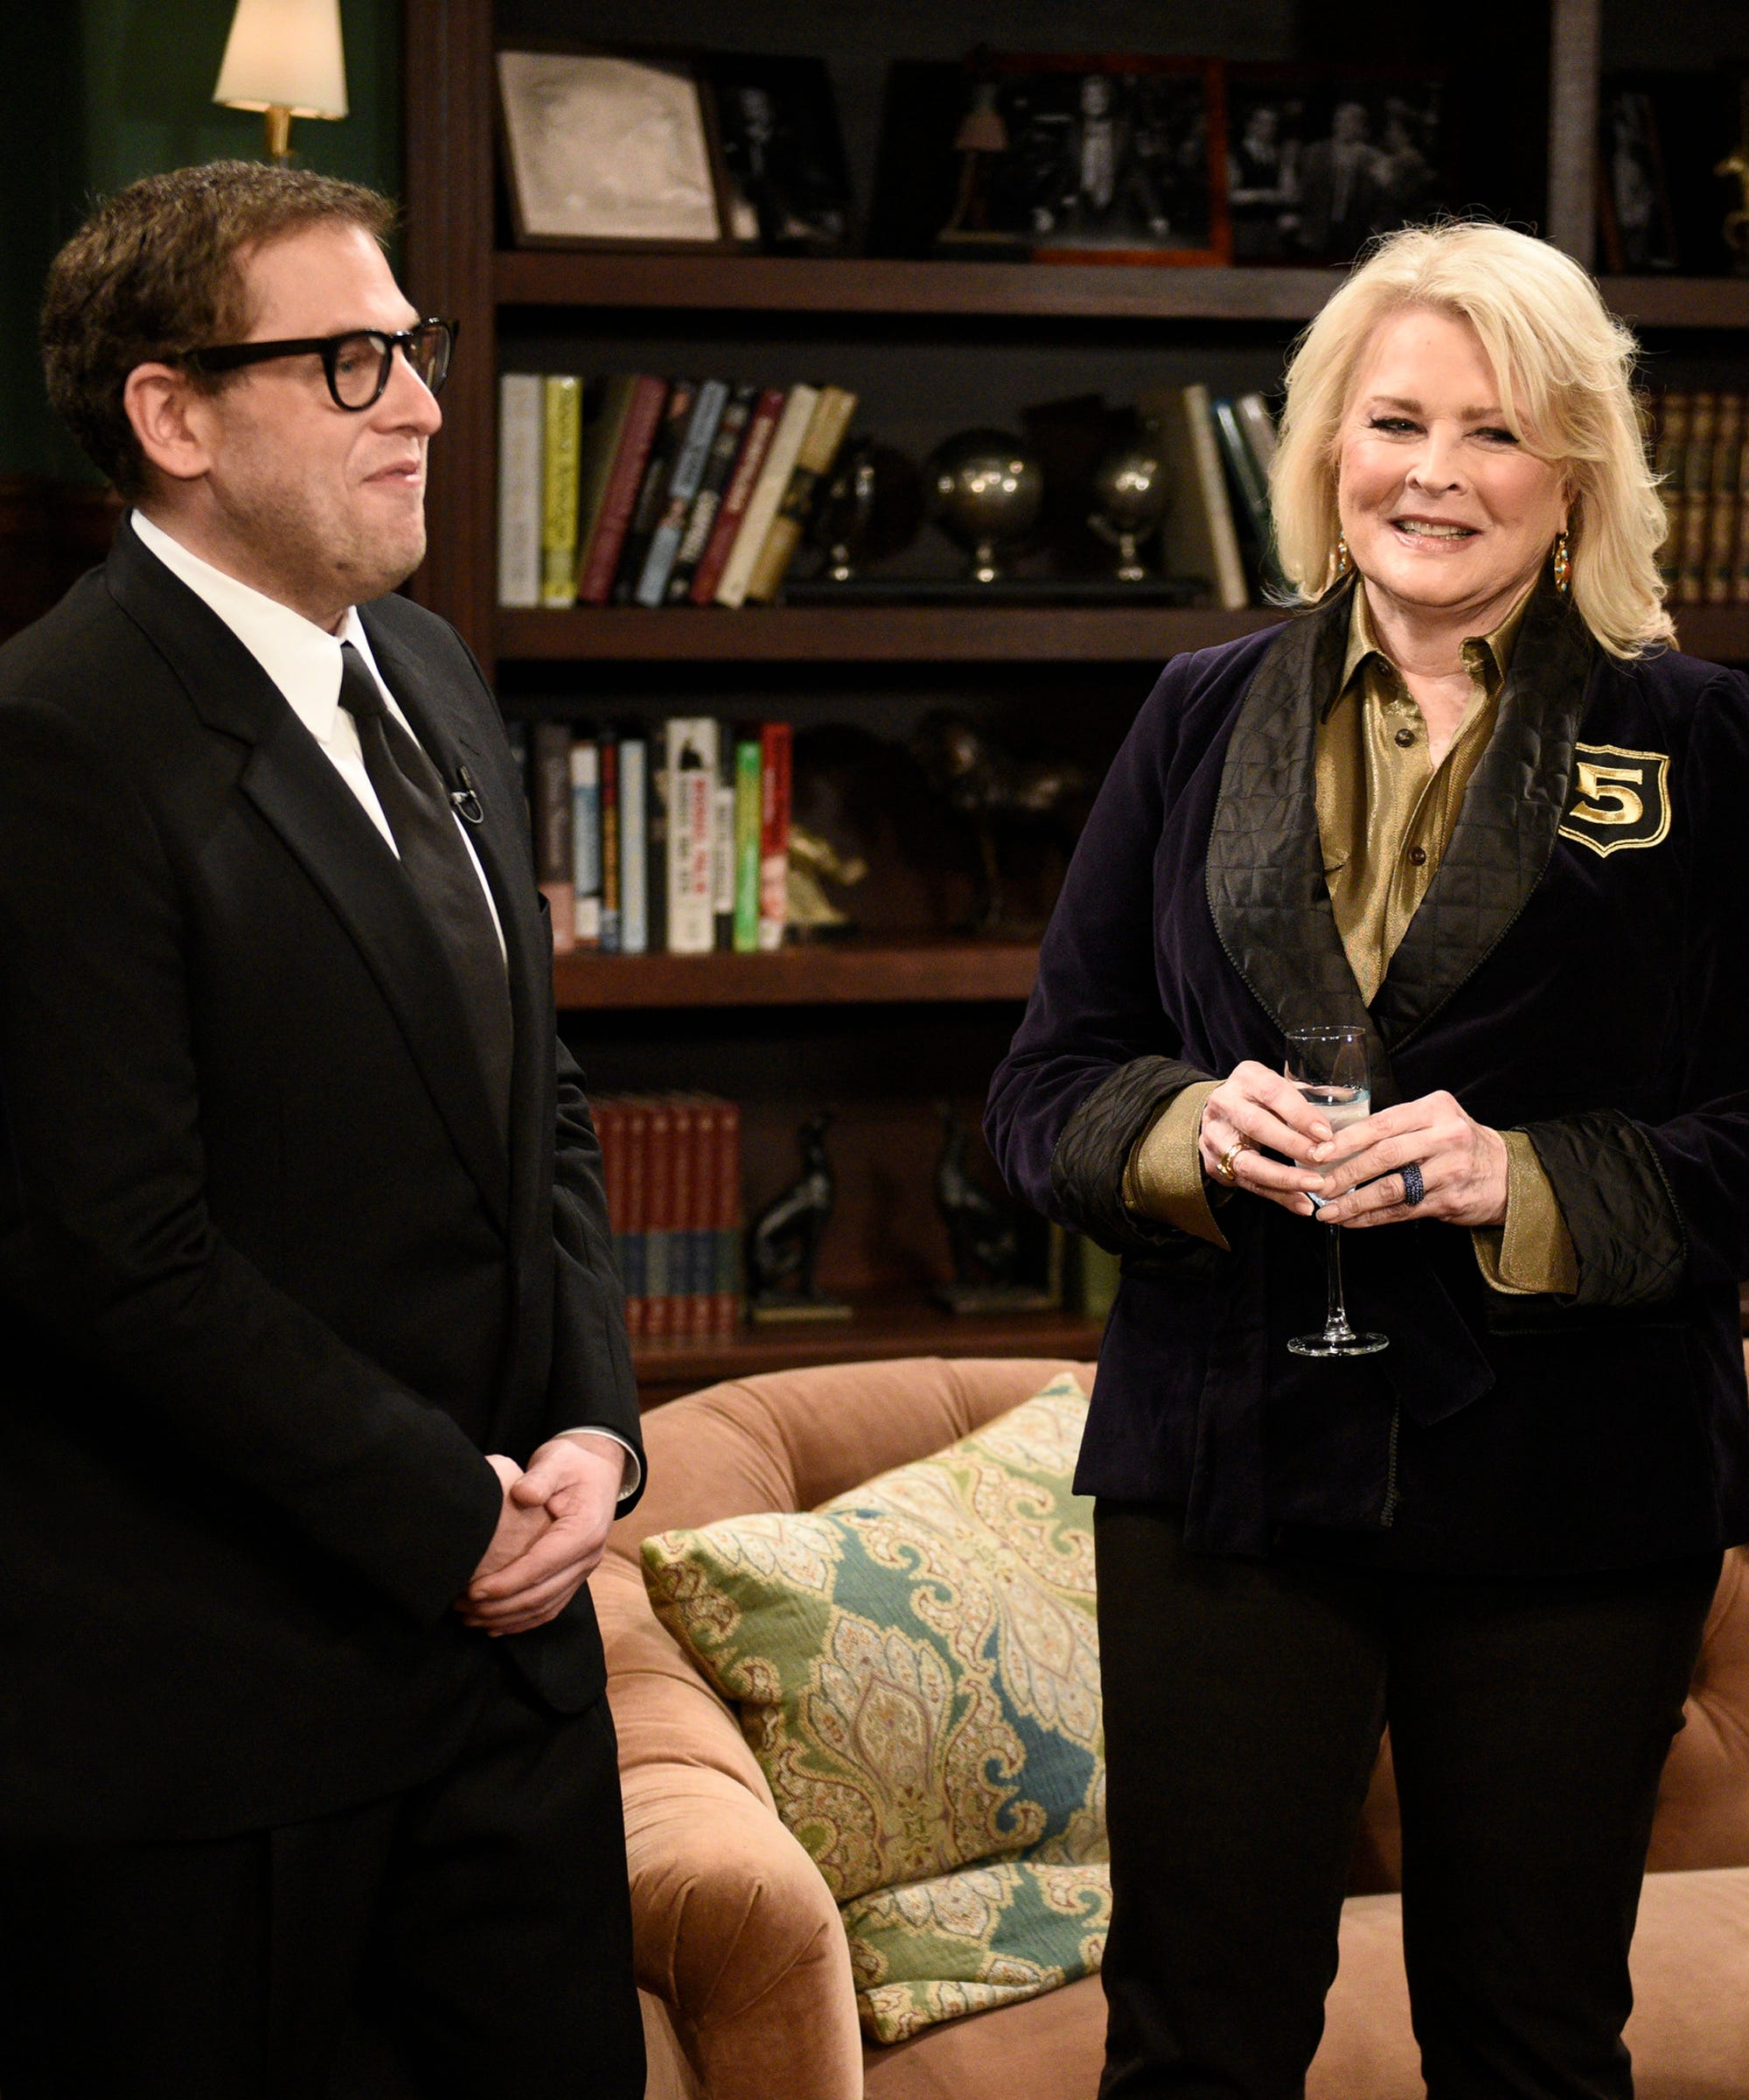 Jonah Hill Snl Five Timers Club Sketch Was Problematic